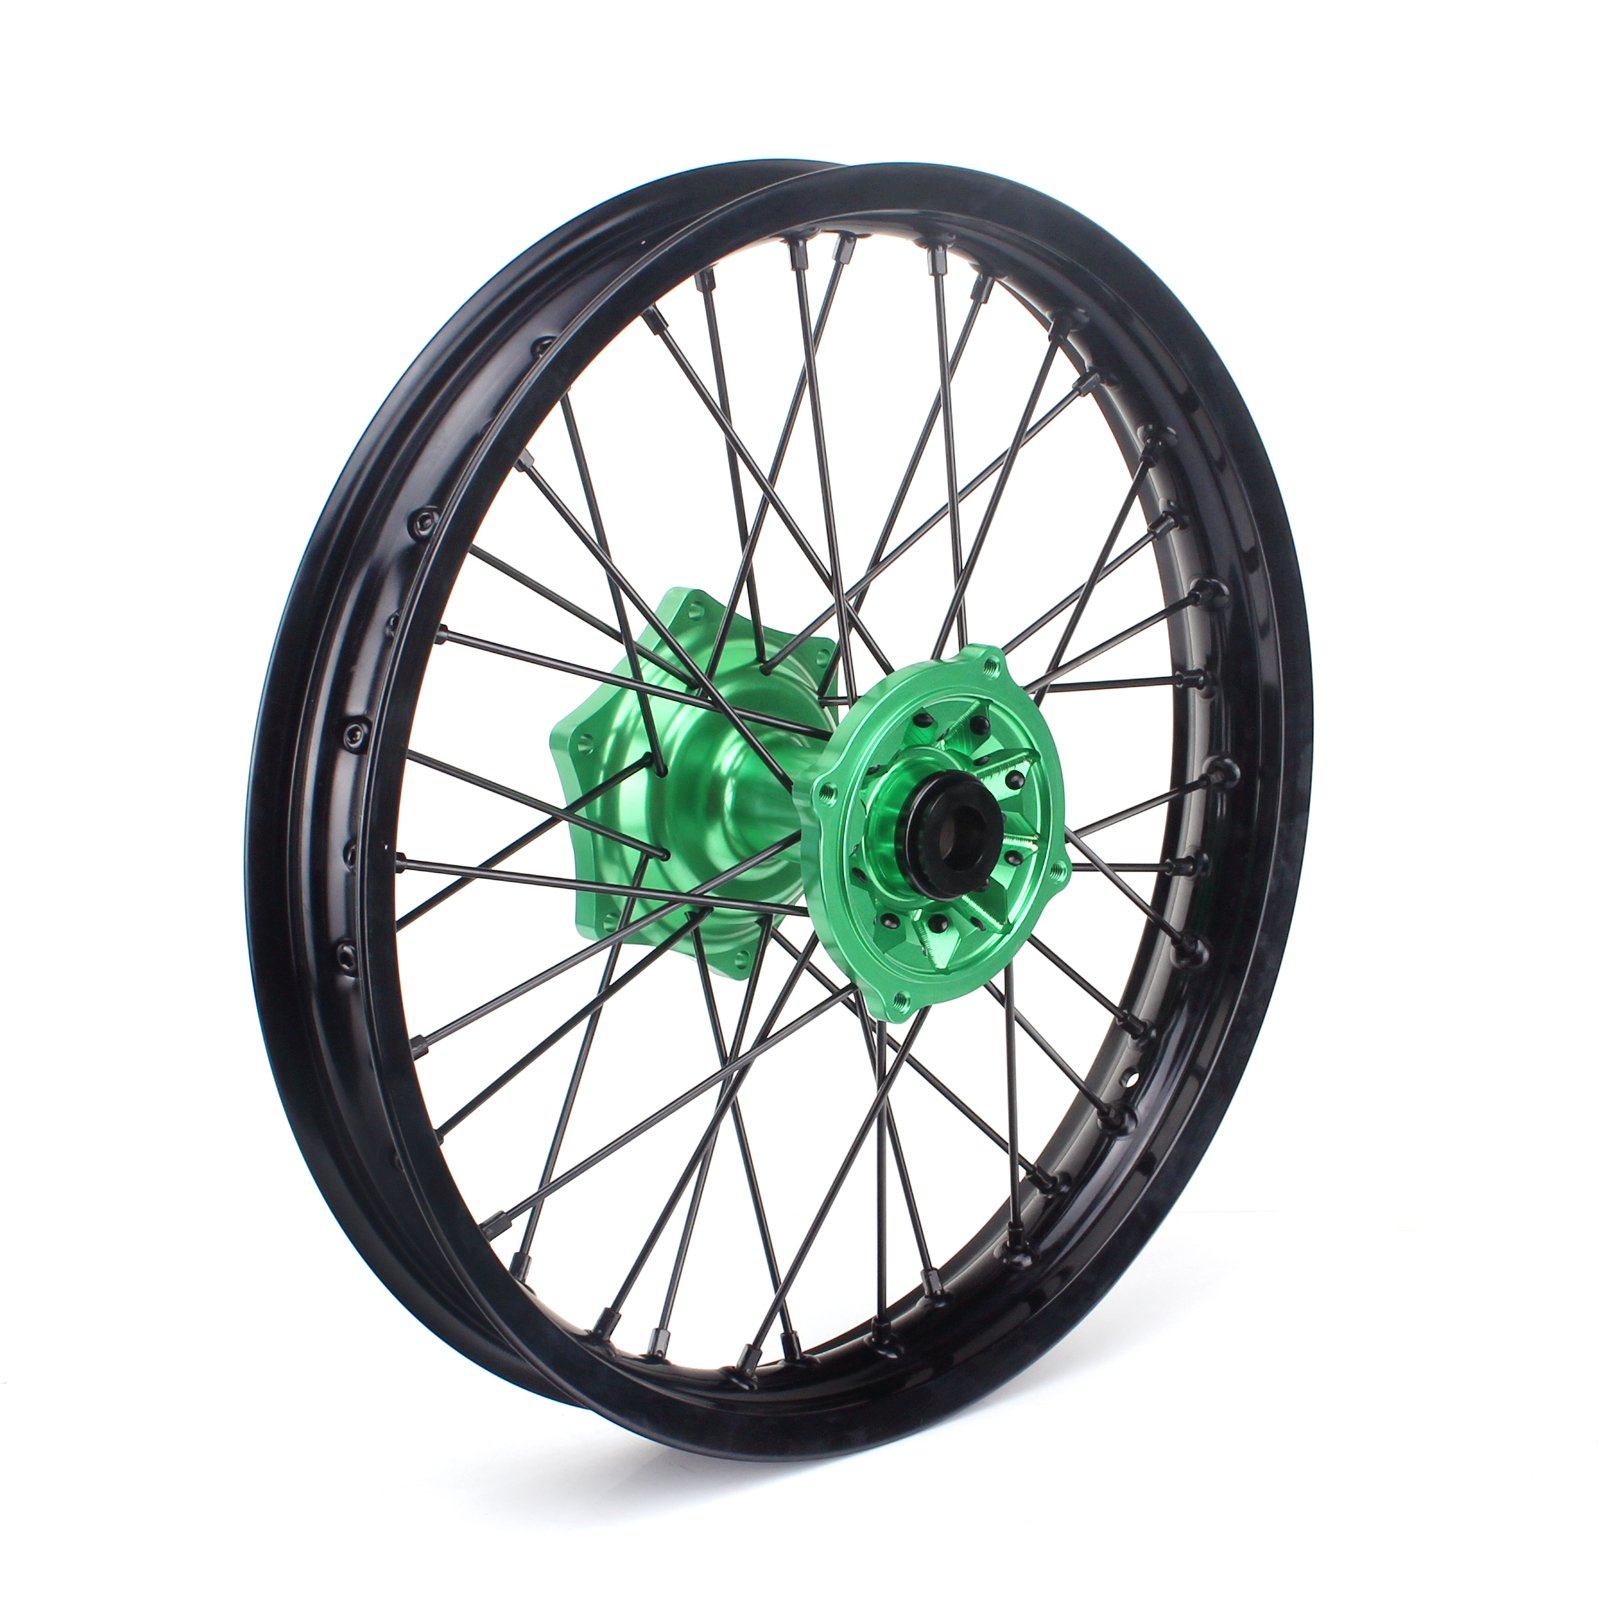 TARAZON 18 x 2.15 MX Rear Wheel Kit 36 Spokes Rim Green Hub for Kawasaki KX125 KX250 2003-2013 KX250F 2004-2017 KX450F 2006-2017 klx450 2007-2013